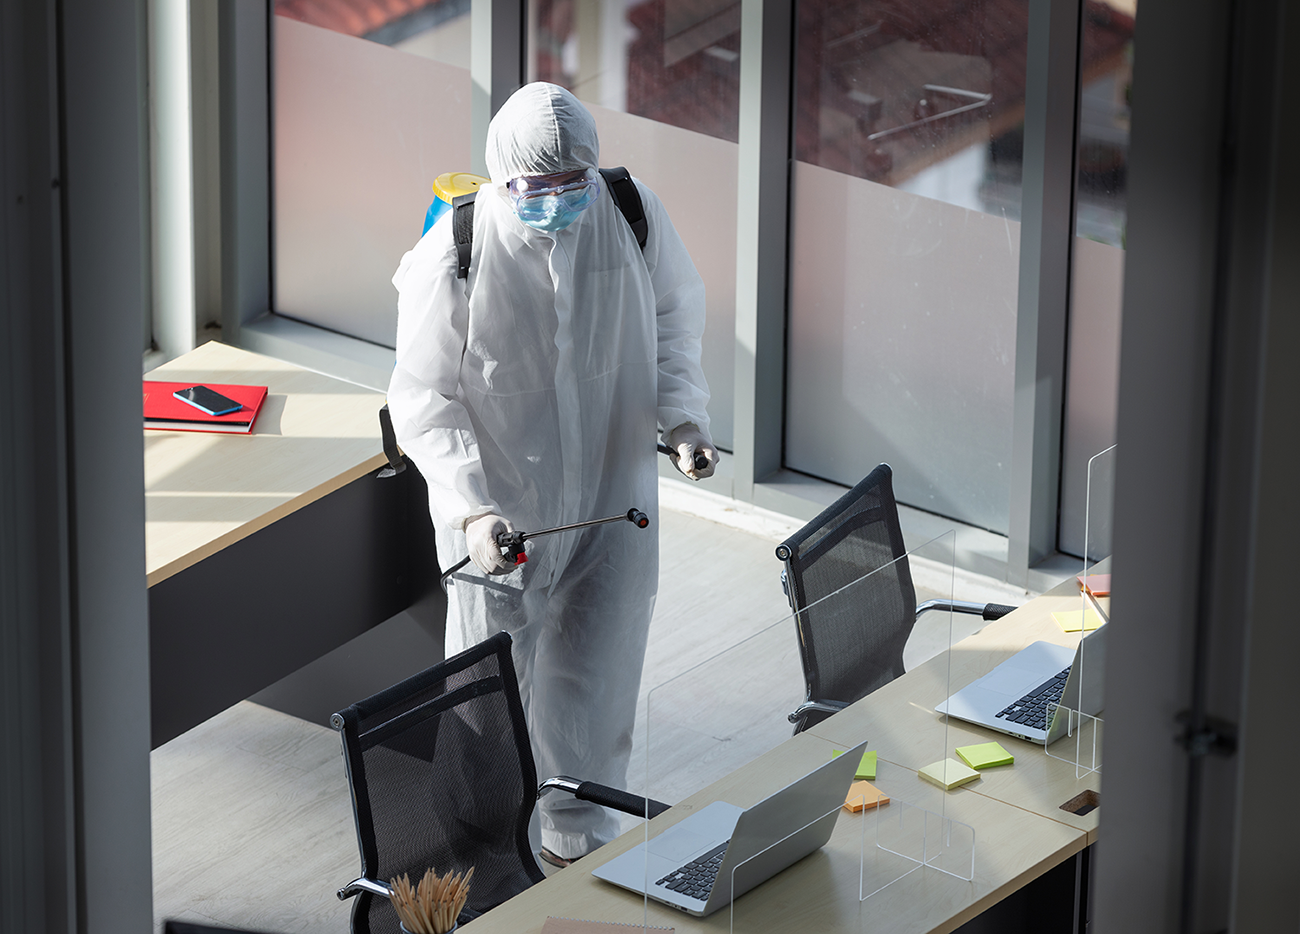 Professional Cleaners – Dealing With The Coronavirus Outbreak